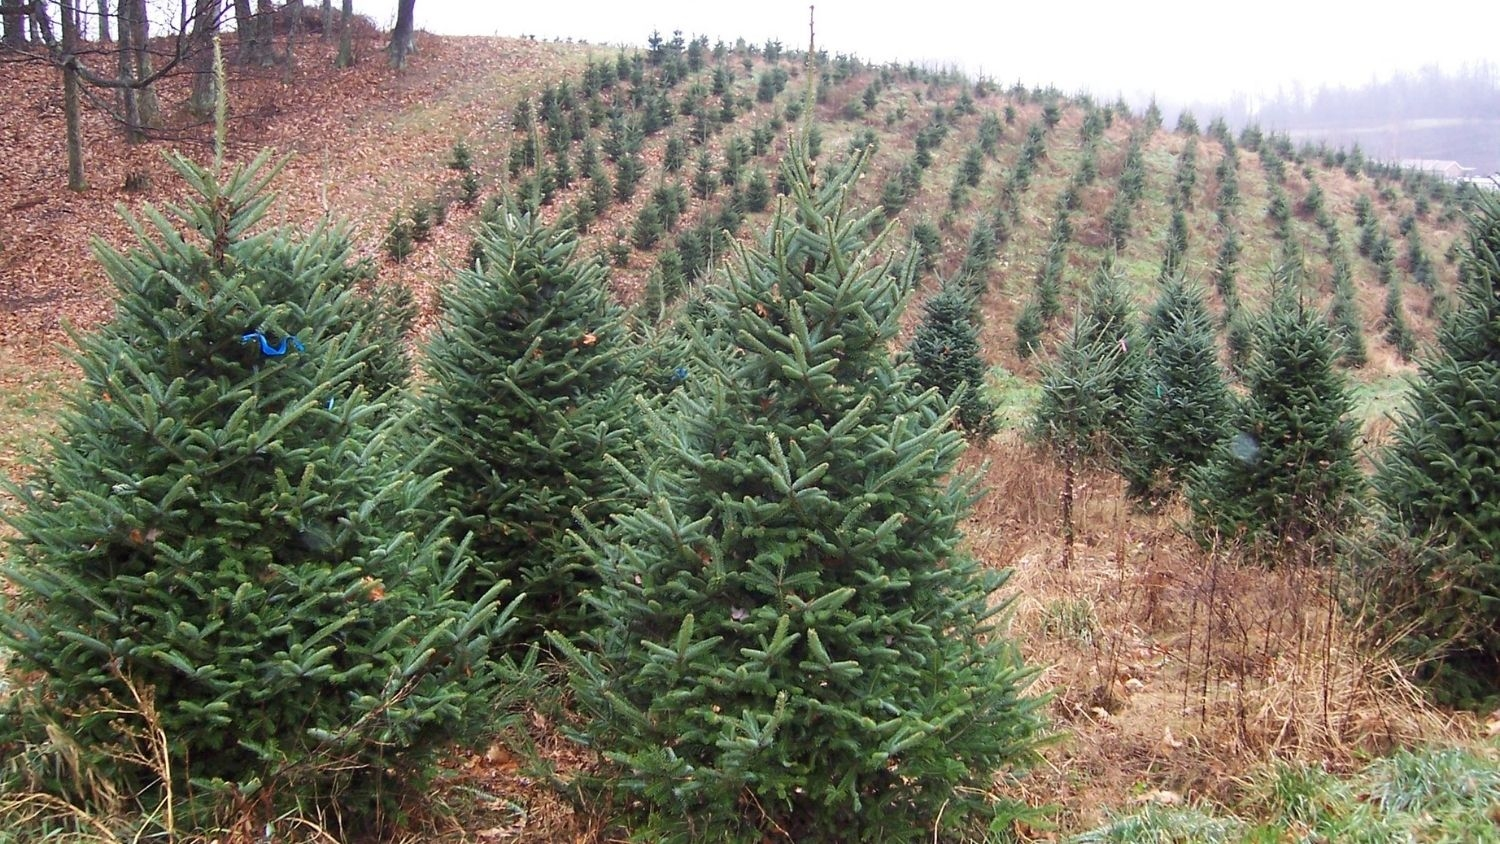 Christmas tree farm - Christmas Trees: Here's The Scoop on North Carolina's Crop - Forestry and Environmental Resources NC State University